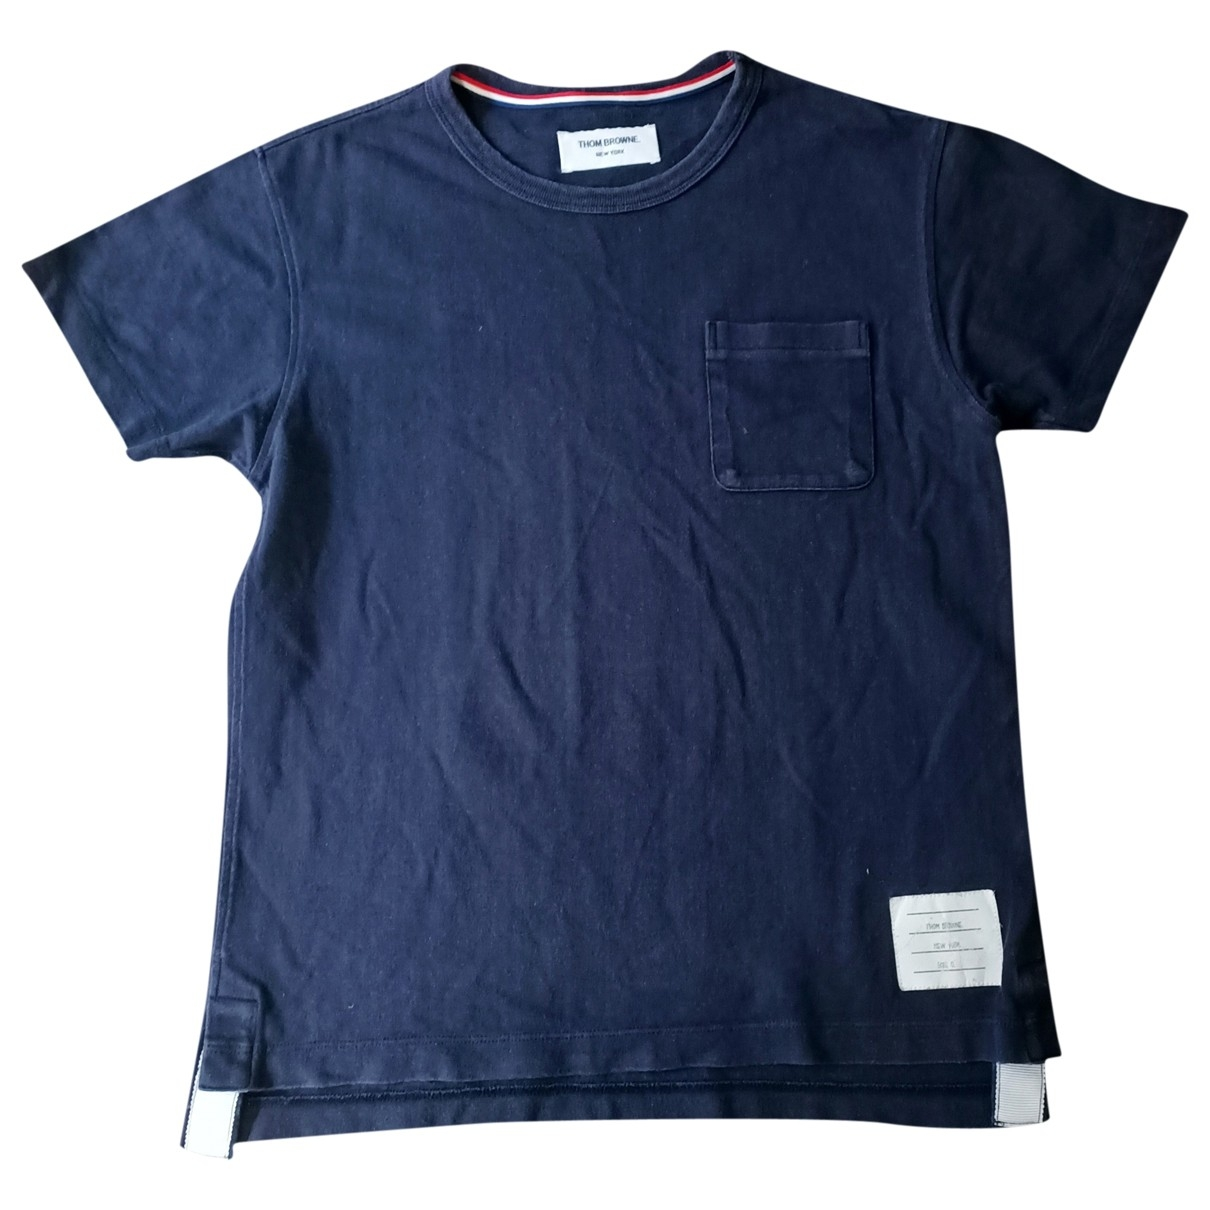 Thom Browne \N Navy Cotton T-shirts for Men 0 0 - 6